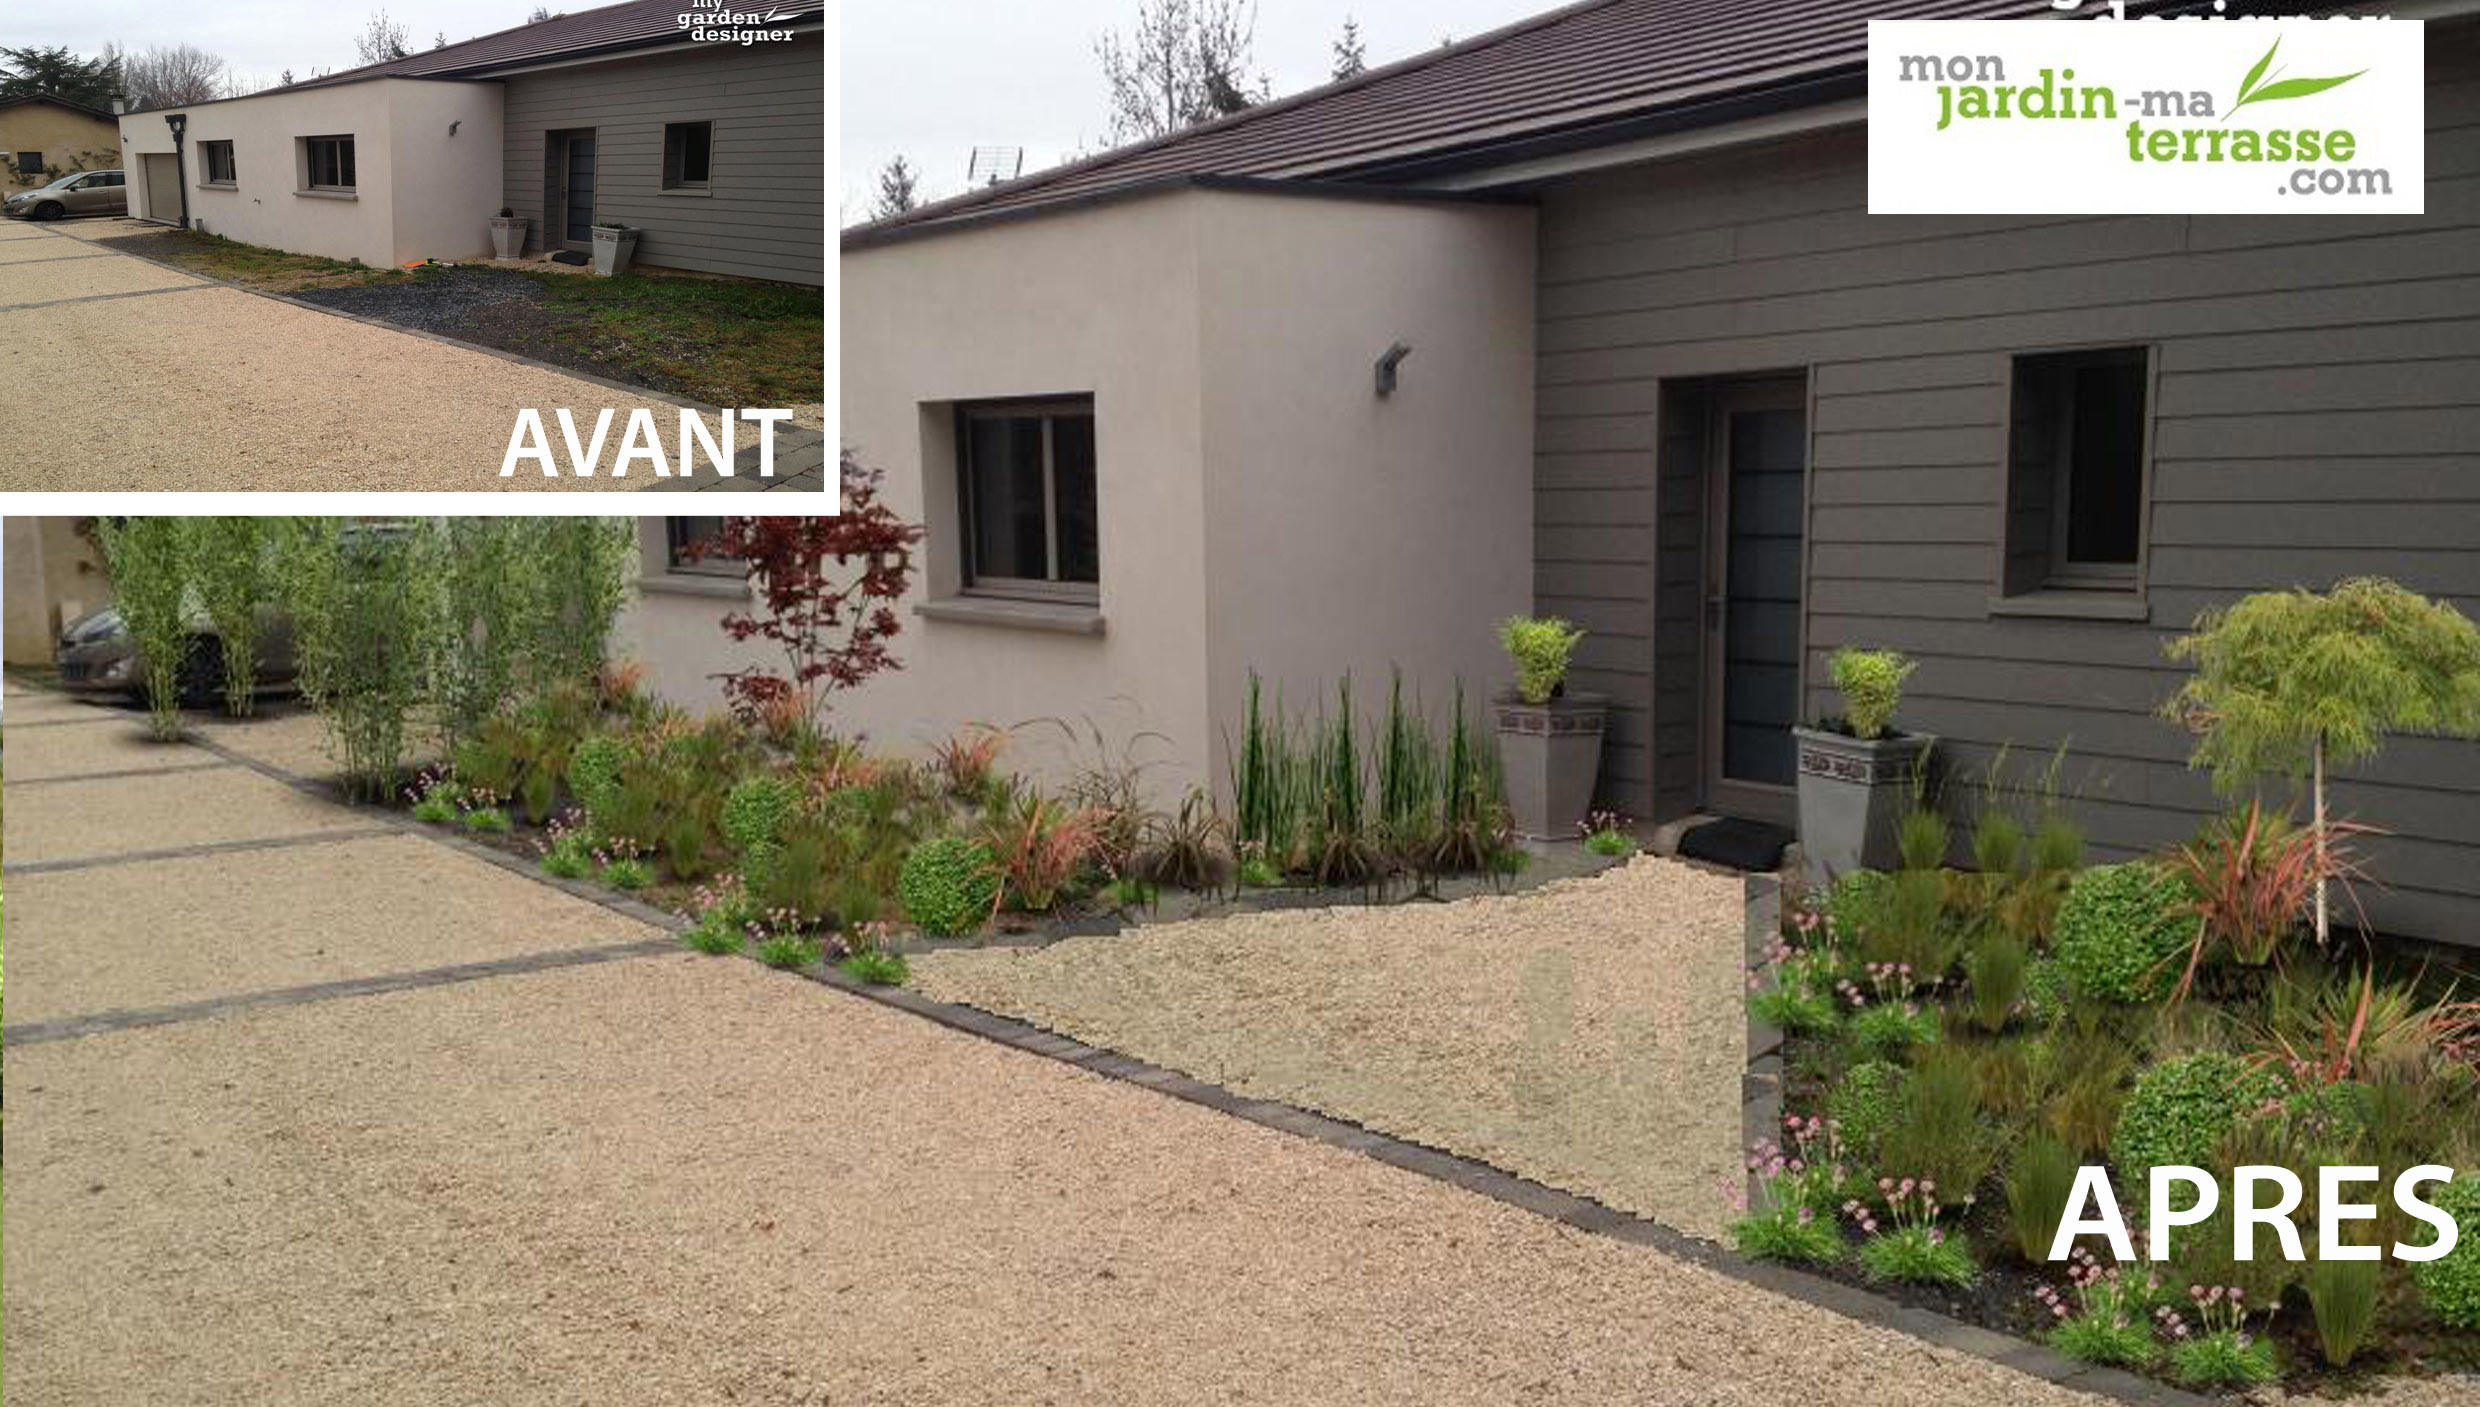 Am nagement du jardin de l entr e d une maison contemporaine monjardin for Amenagement du jardin photo